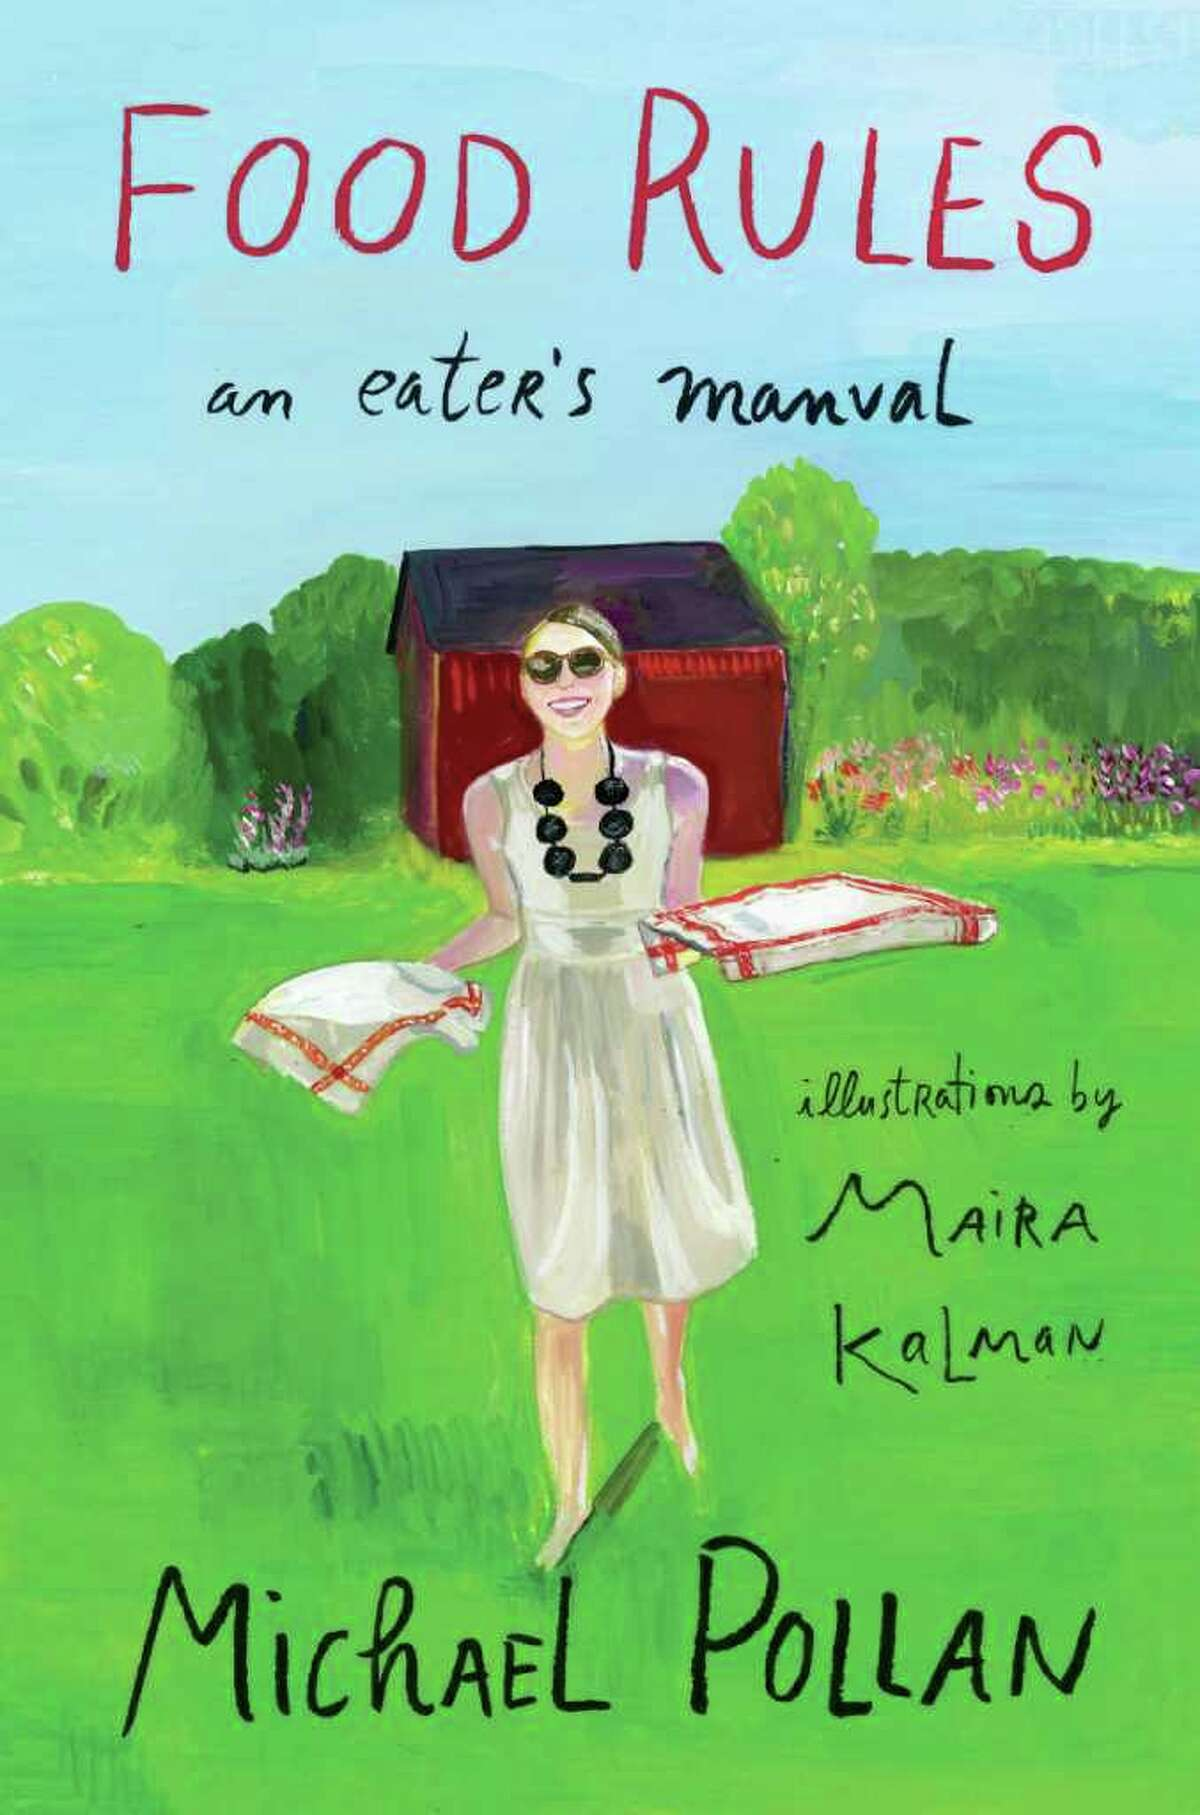 MAIRA KALMAN : Printed by arrangement with The Penguin Press CHOICE WORDS: The new edition of Michael Pollan's Food Rules: An Eater's Manual will feature illustrations by Maira Kalman - one more way the best-selling author is attempting to reach a broad audience with his message about healthy eating.